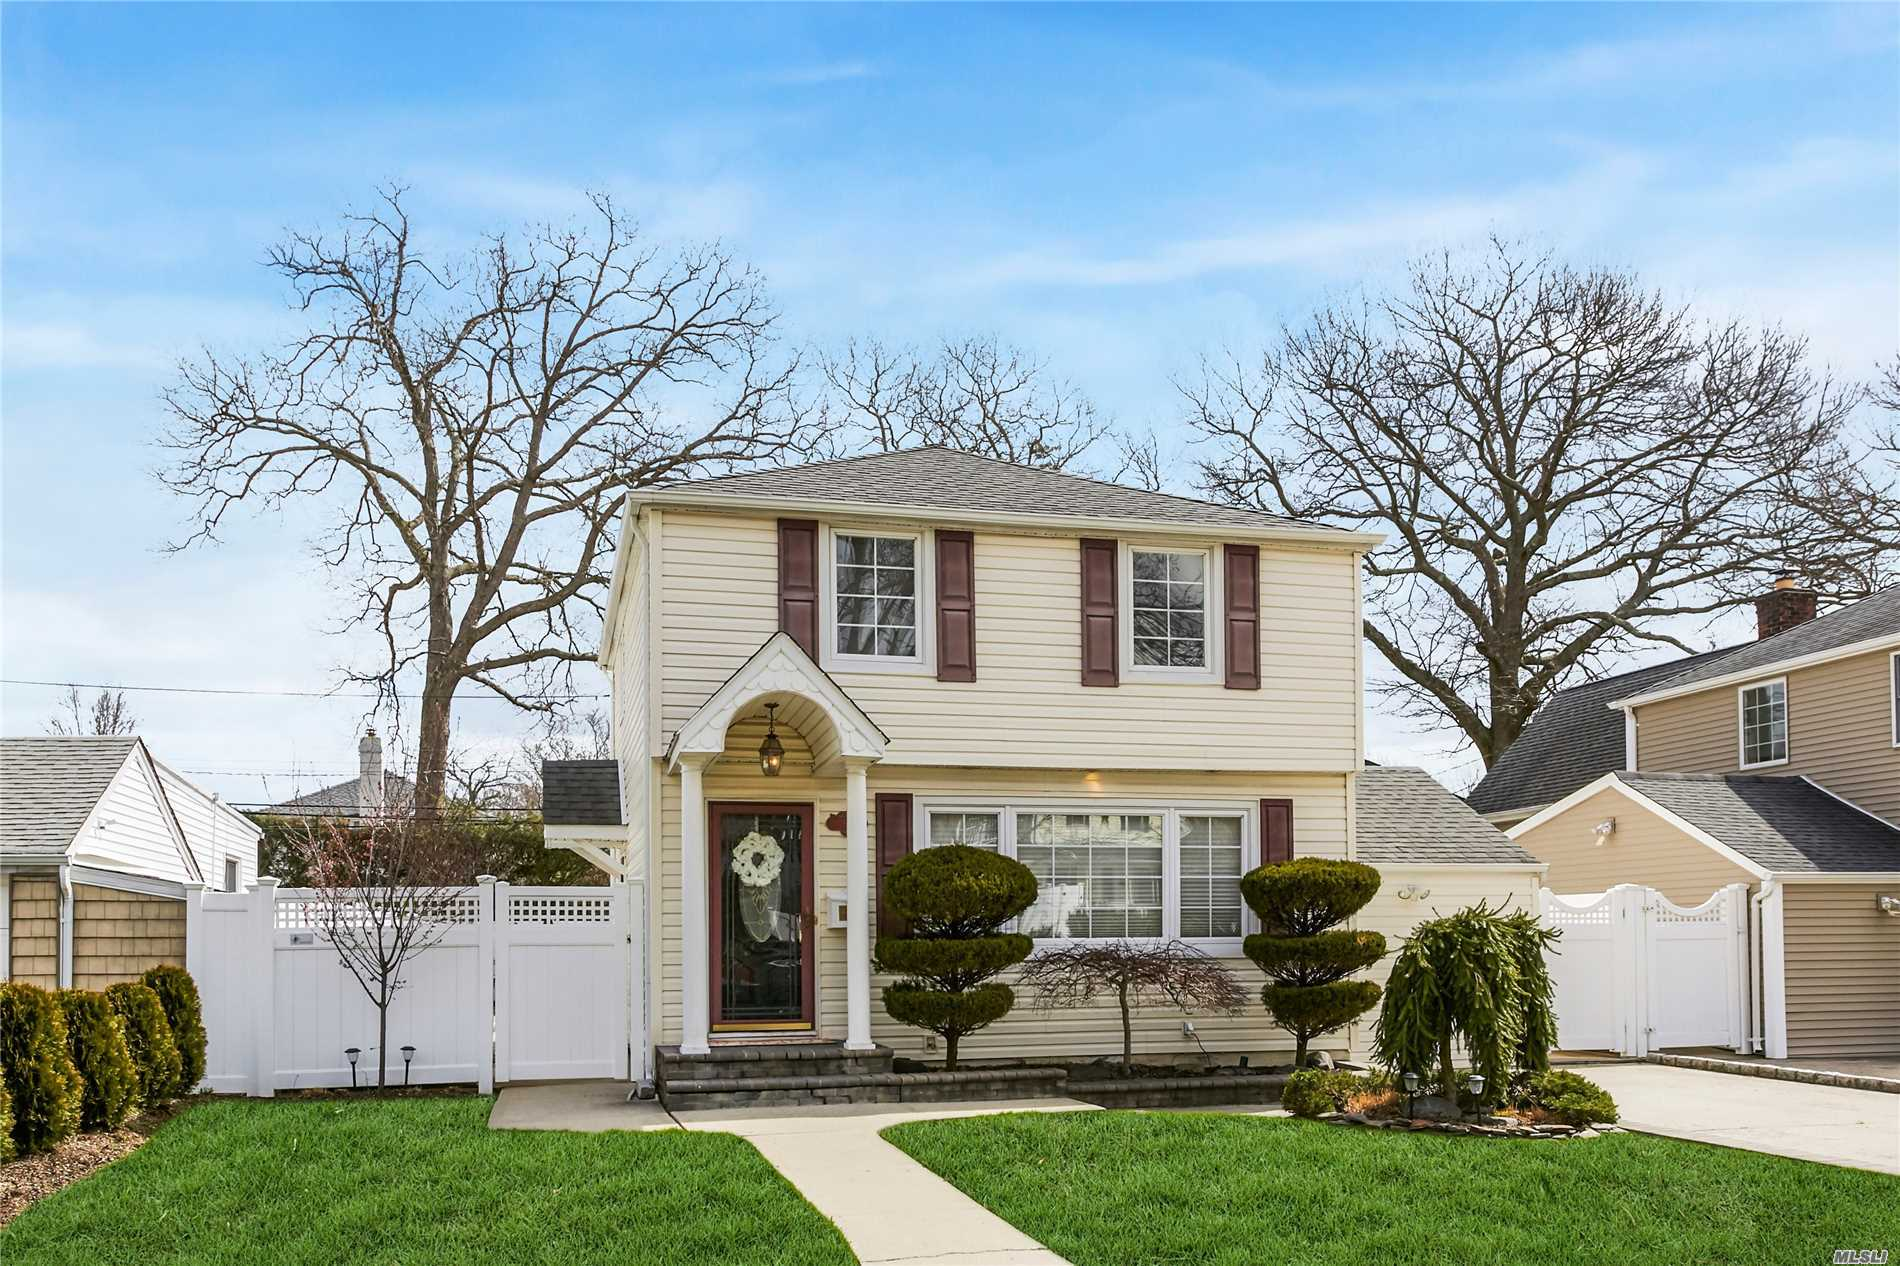 Beautiful And Immaculate One Family Home That Sits On A Generous Size Lot , Modern Kitchen With Granite , 2 Modern Full Bathrooms, 3 Bedrooms And Beautiful Hardwood Floors, The Home Also Has Central Air And Central Heat For Your Comfort.This Home Is A True Turn Key Home.